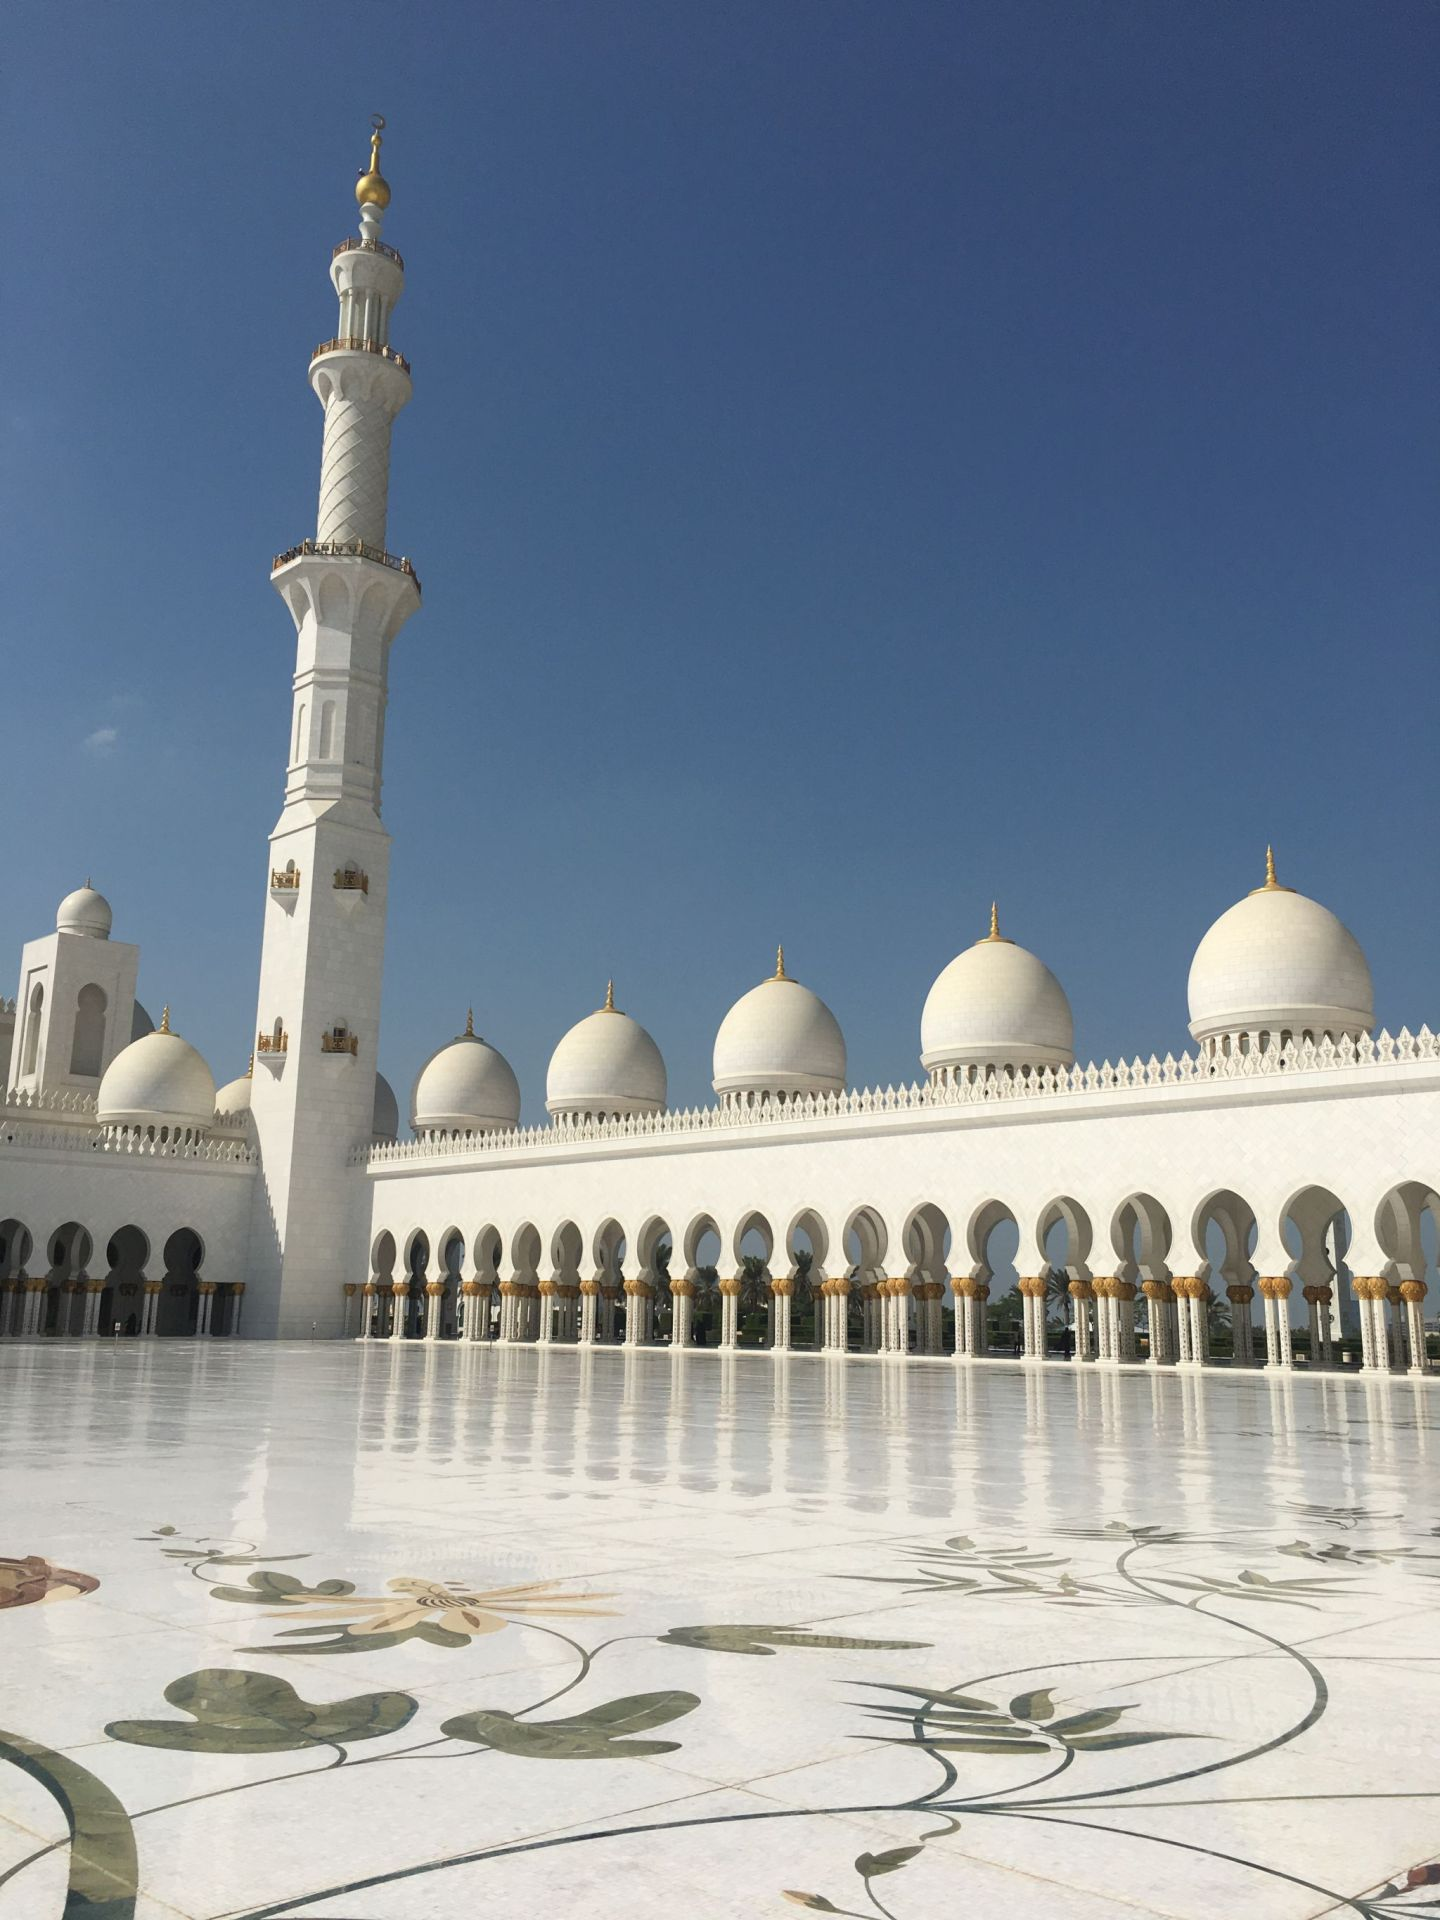 FAQs for visiting Sheikh Zayed Grand Mosque, Abu Dhabi